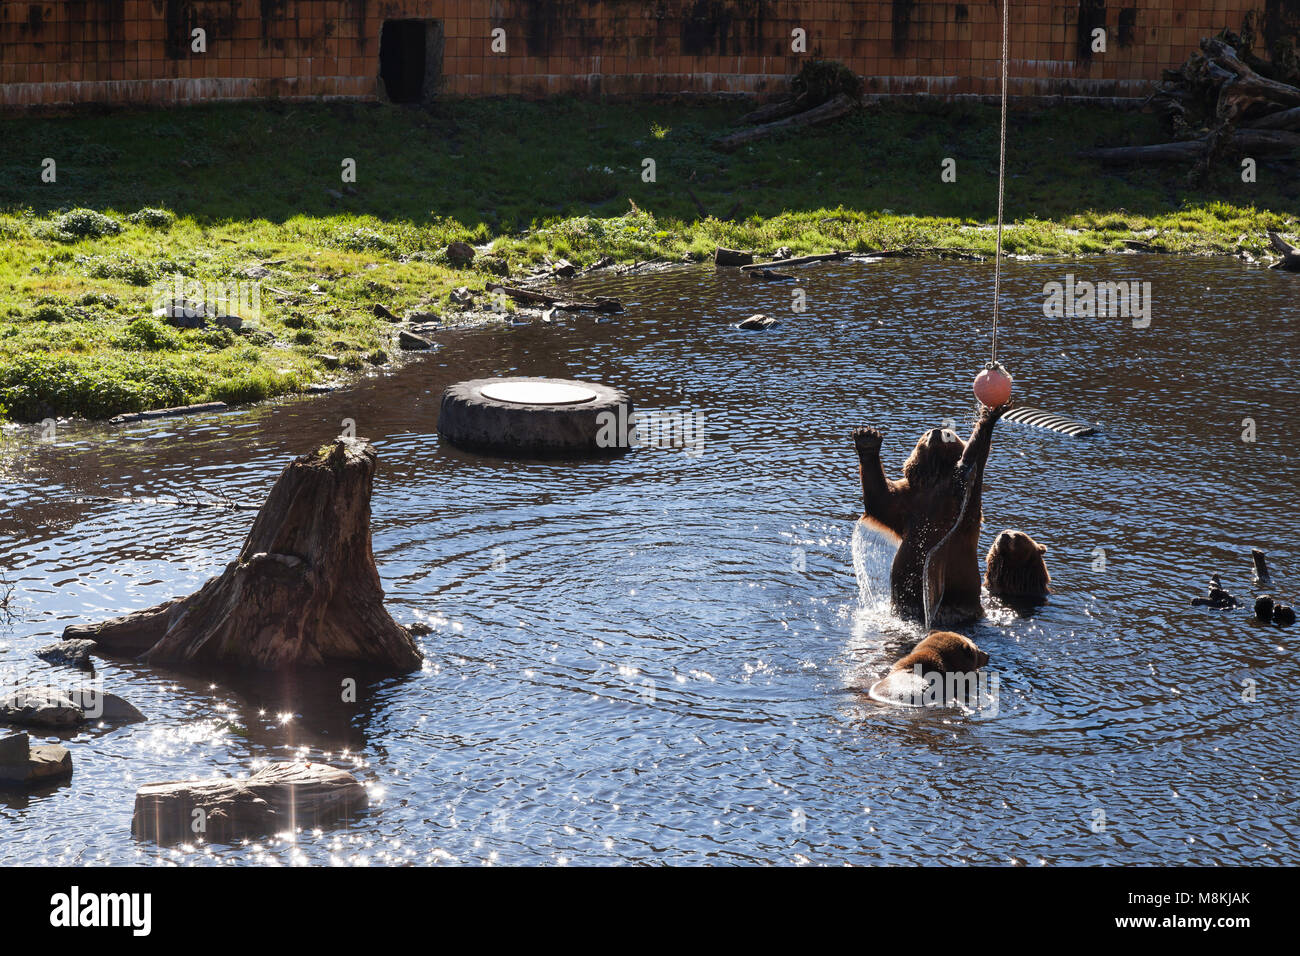 Sitka, Alaska: Three brown bears frolic at the Fortress of the Bear wildlife sanctuary in the Tongass National Forest. - Stock Image